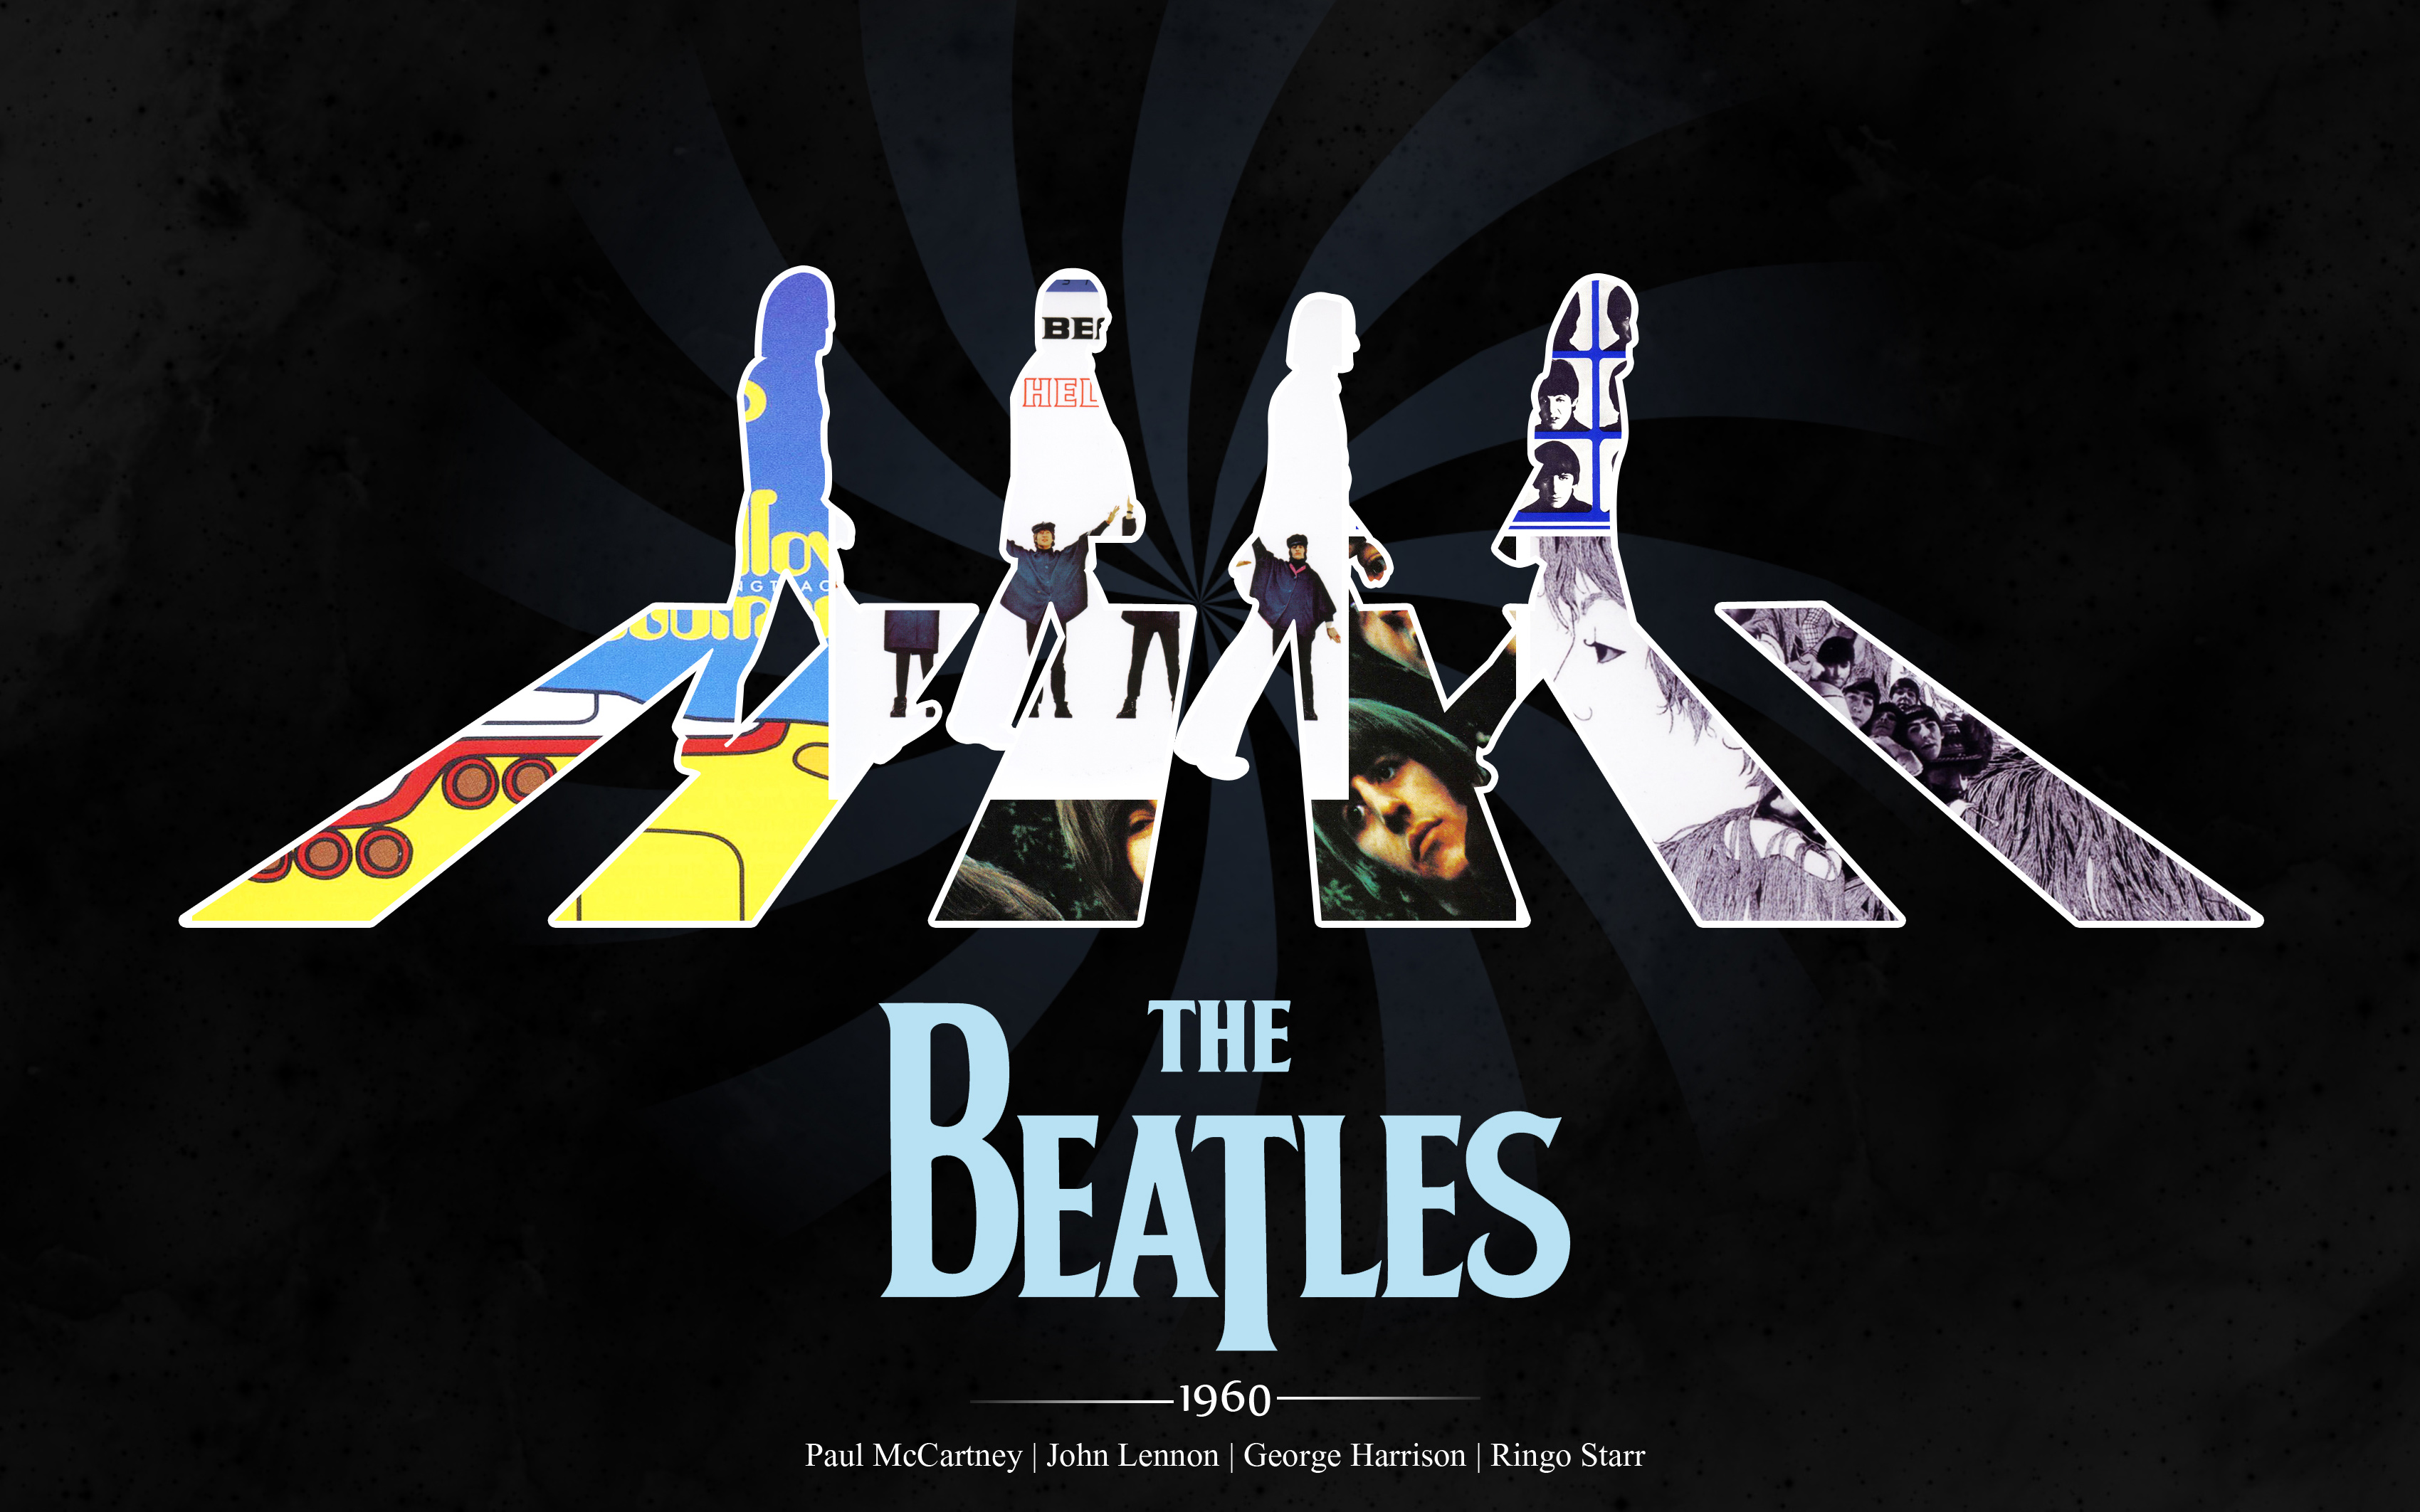 The Beatles 4K9593811817 - The Beatles 4K - The, Guitars, Beatles